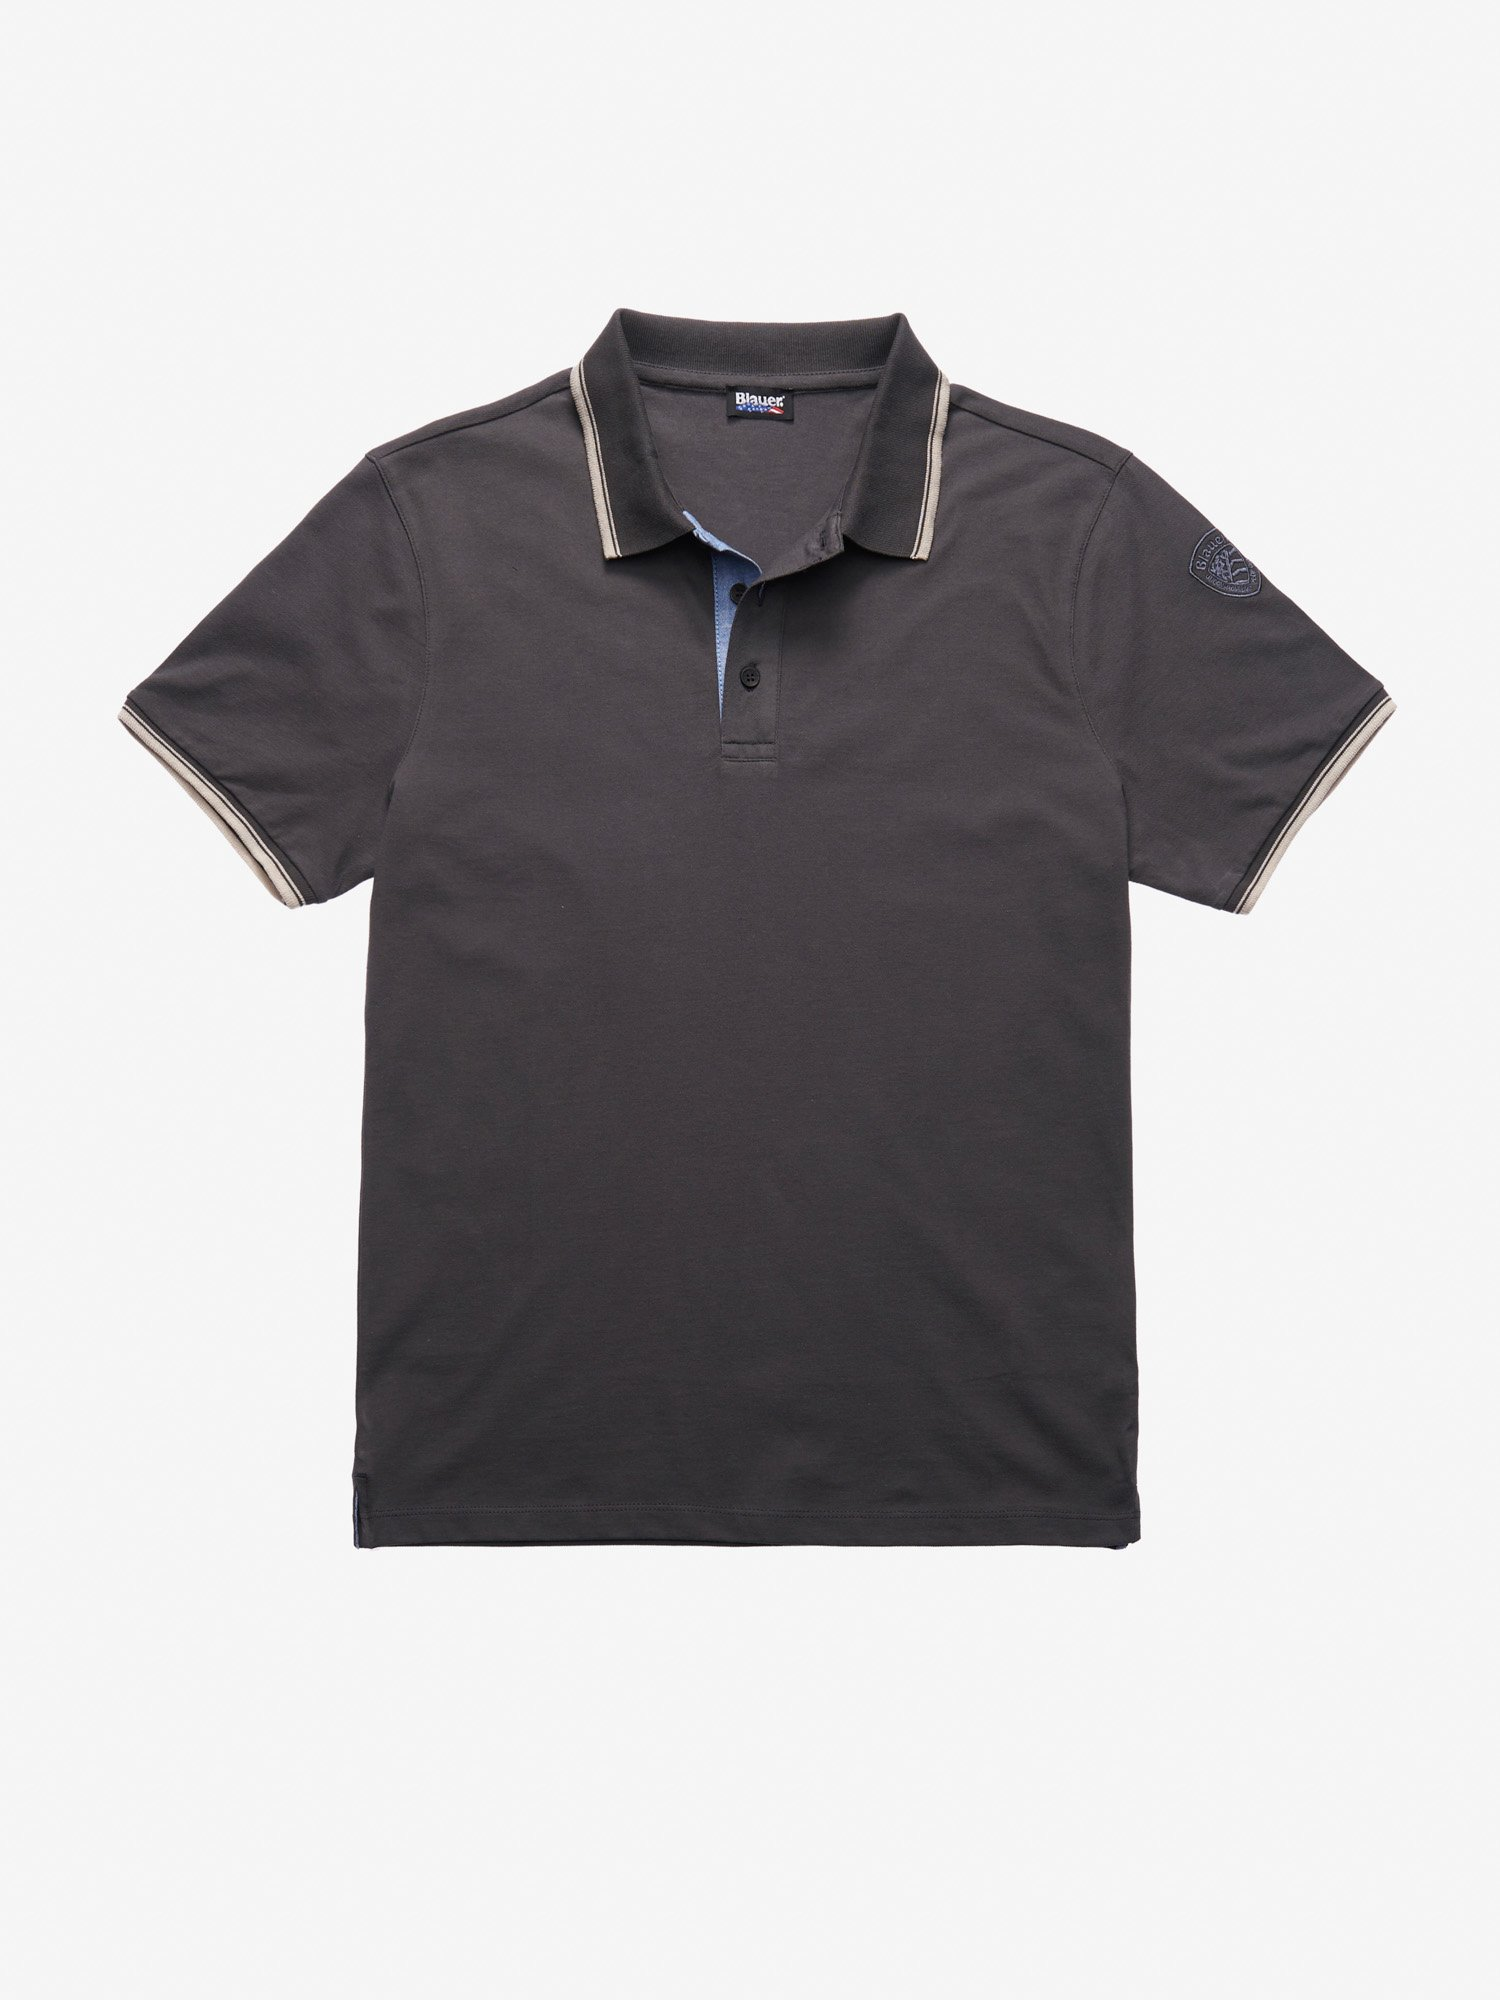 POLO SHIRT WITH POCKET - Blauer